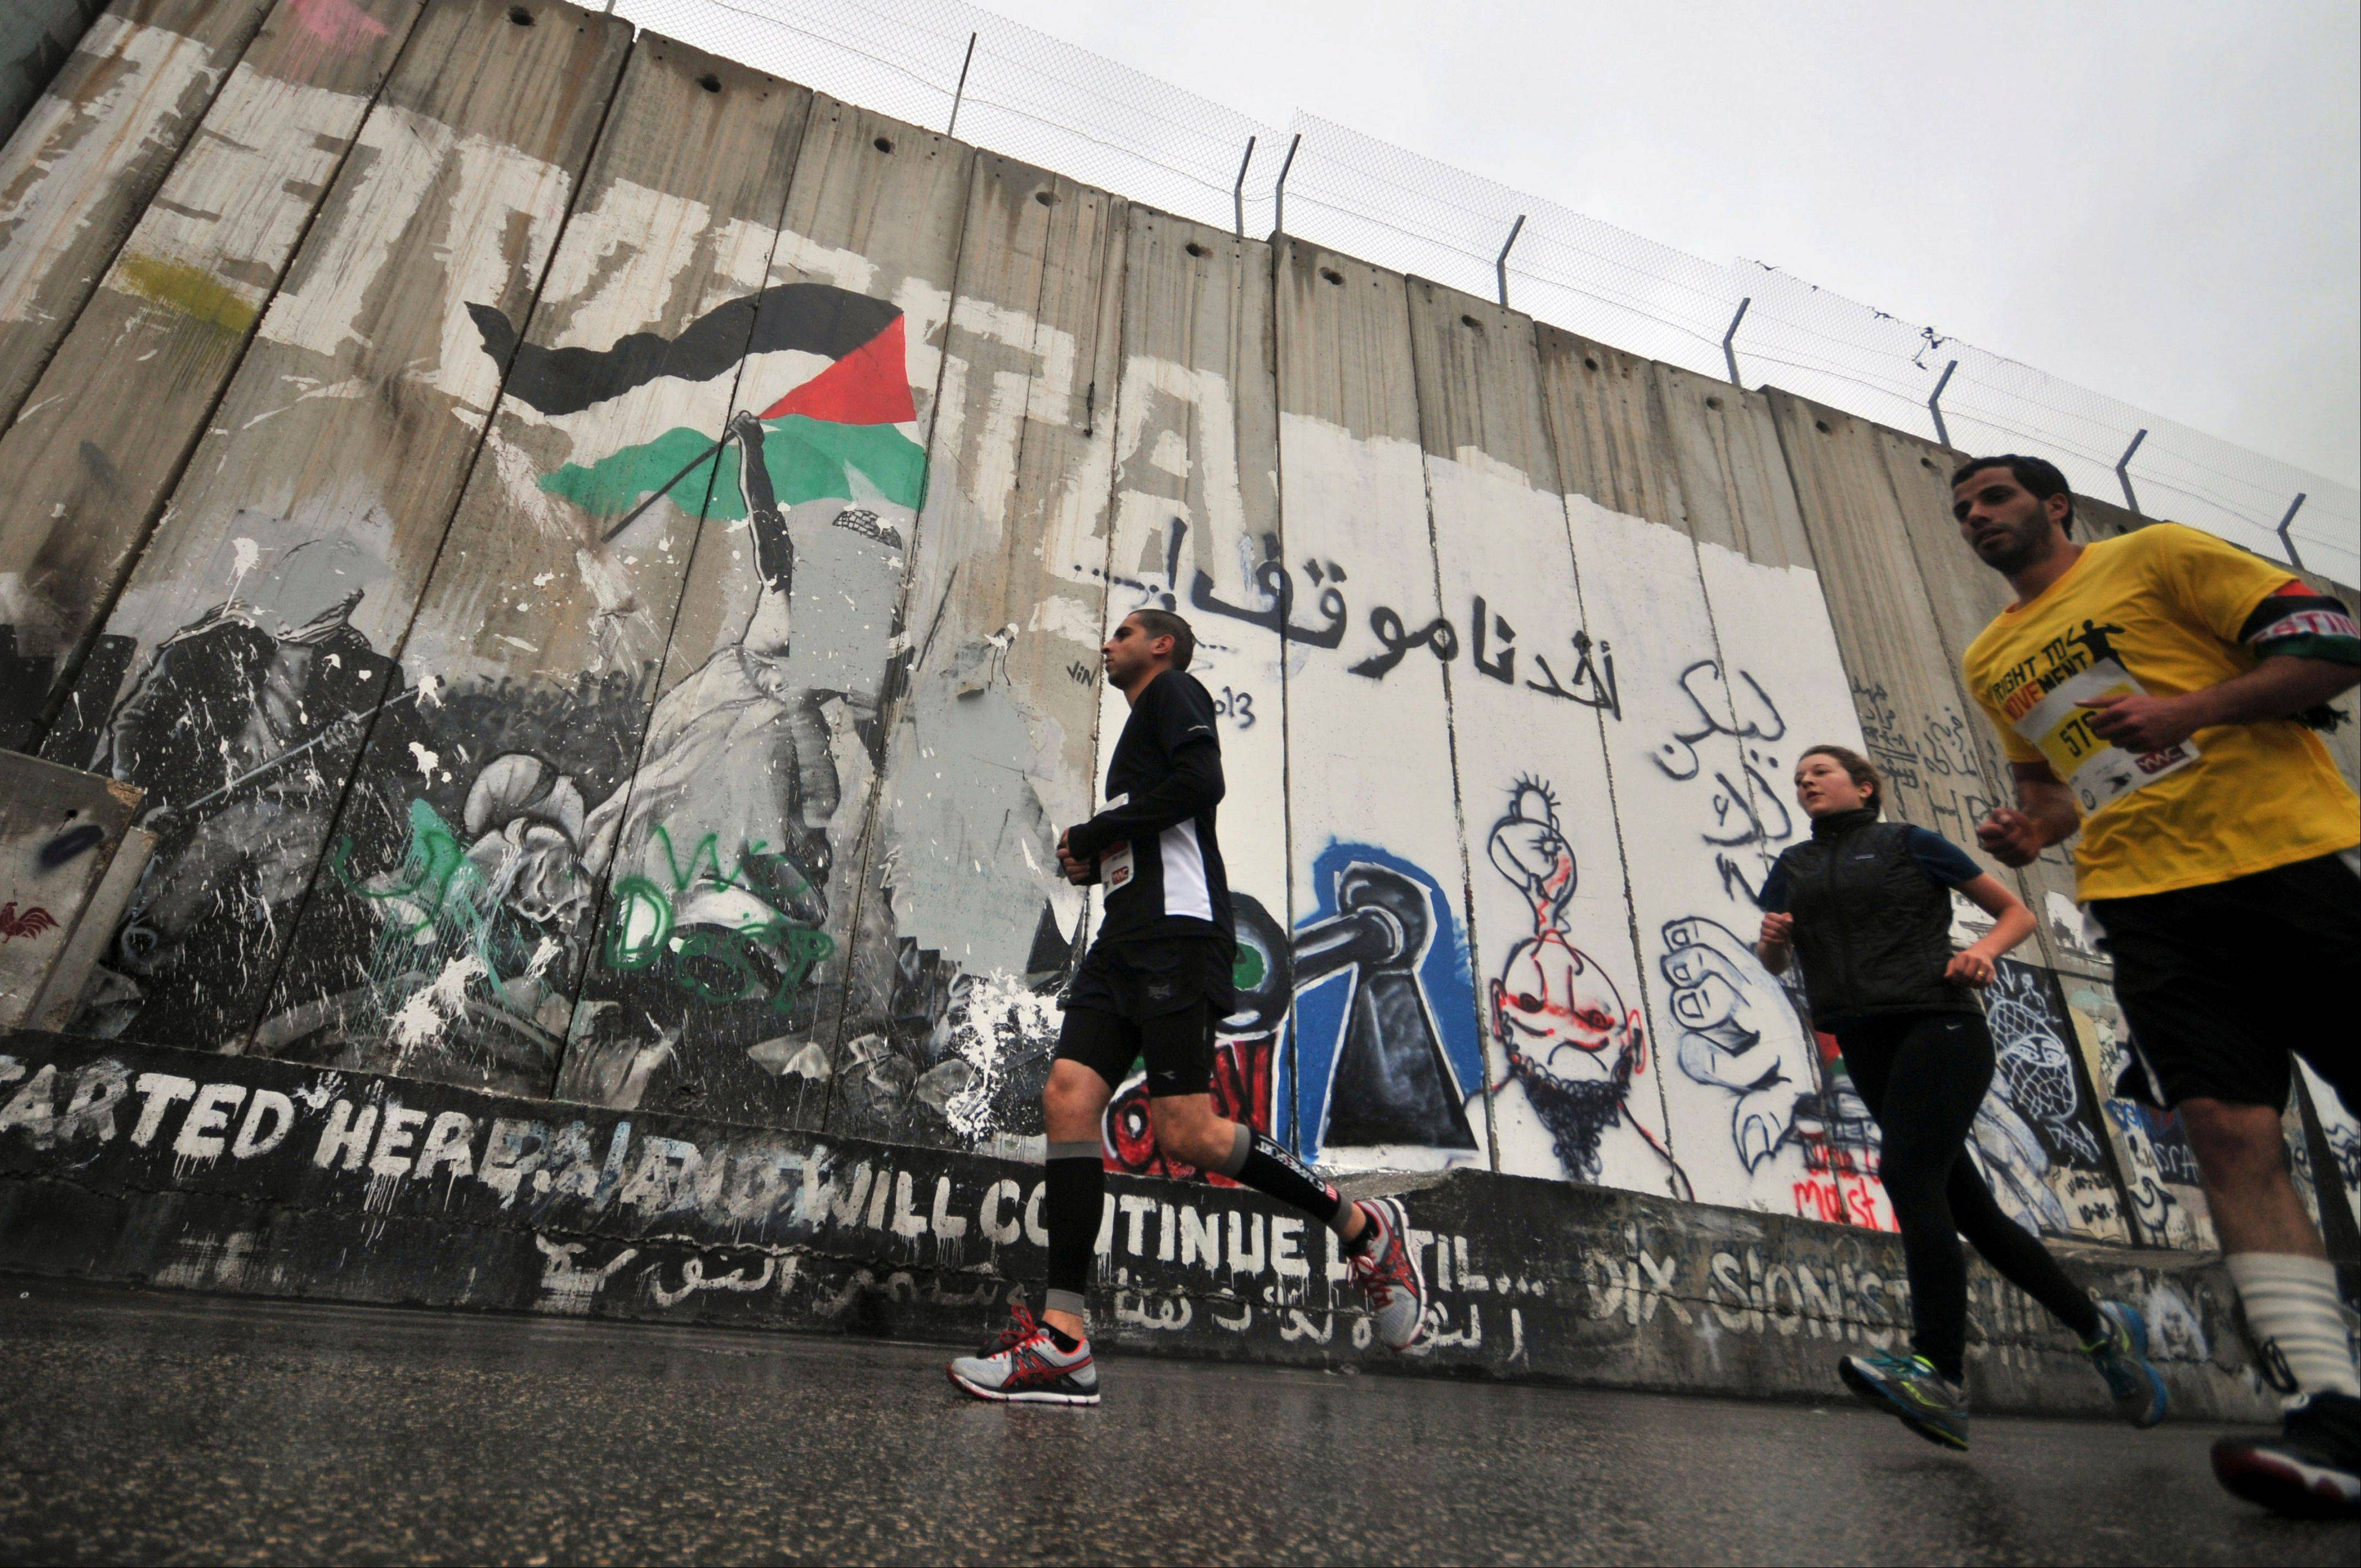 People run past the separation wall Sunday during the West Bank's first marathon in Bethlehem. About 1,000 people participated in the race, which included shorter 10-kilometer and 20-kilometer options.